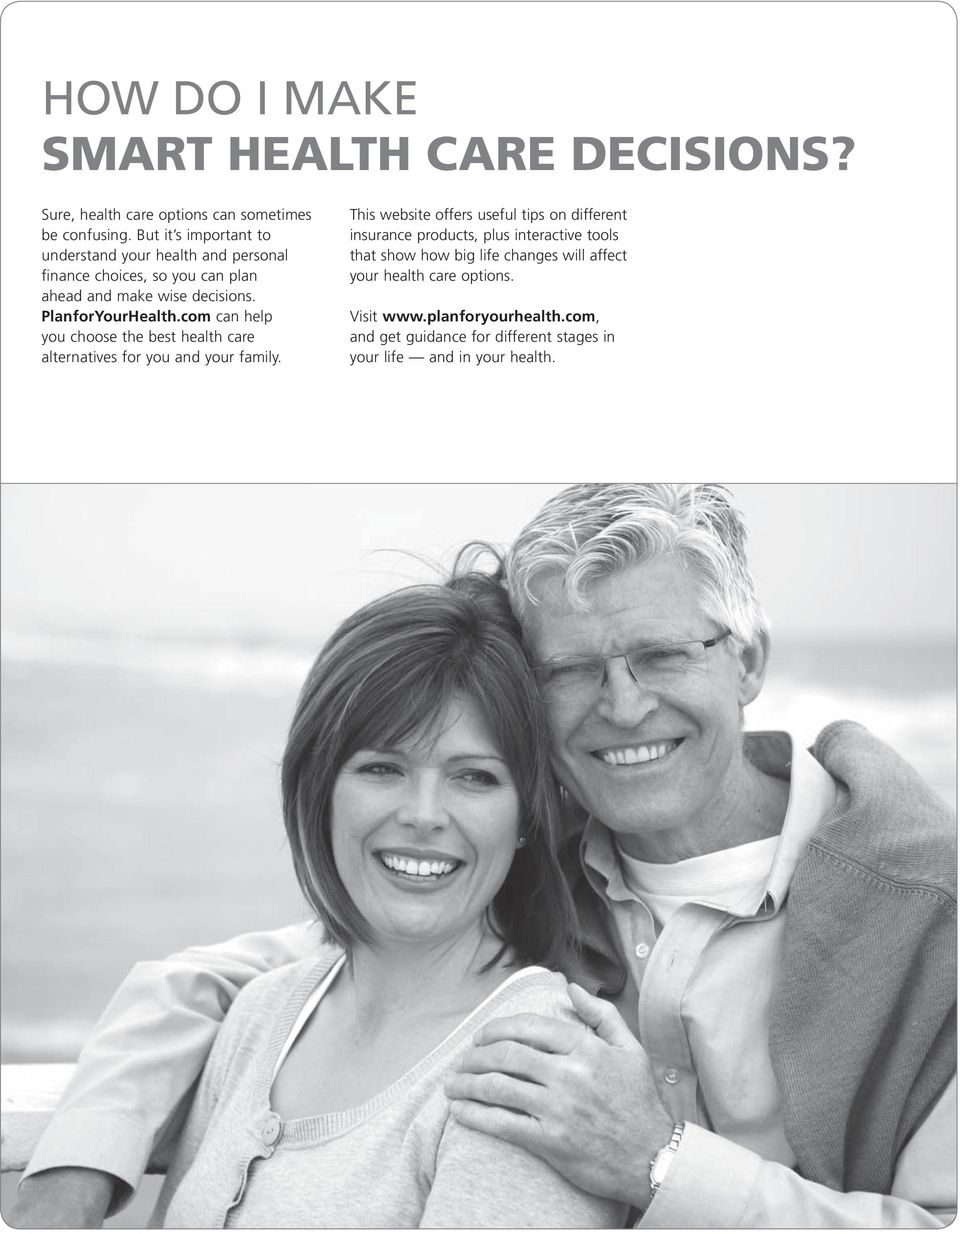 com can help you choose the best health care alternatives for you and your family.